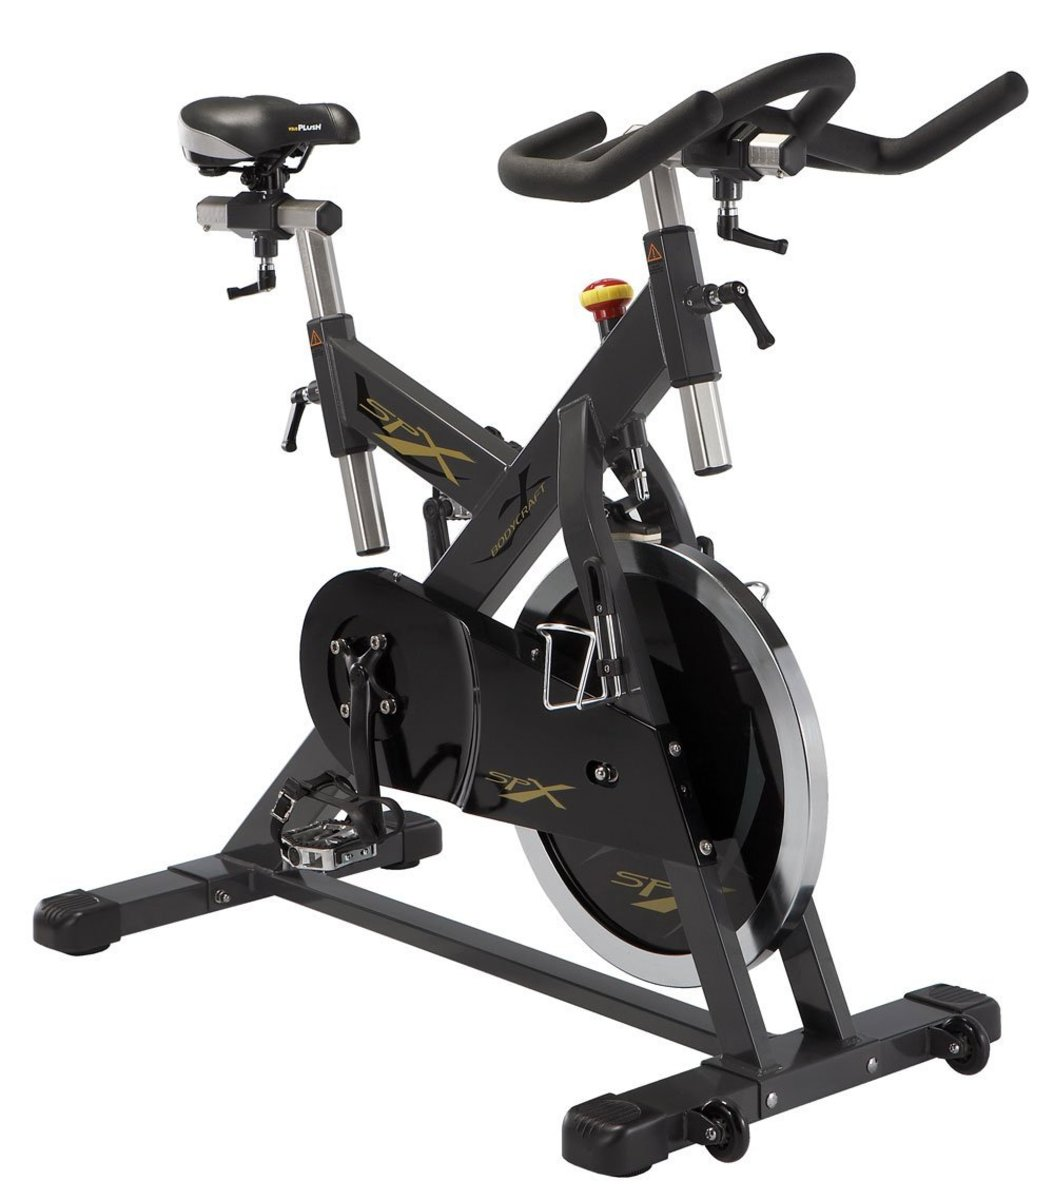 Upright vs Recumbent? 7 Best Exercise Bikes for Home Fitness in 2016